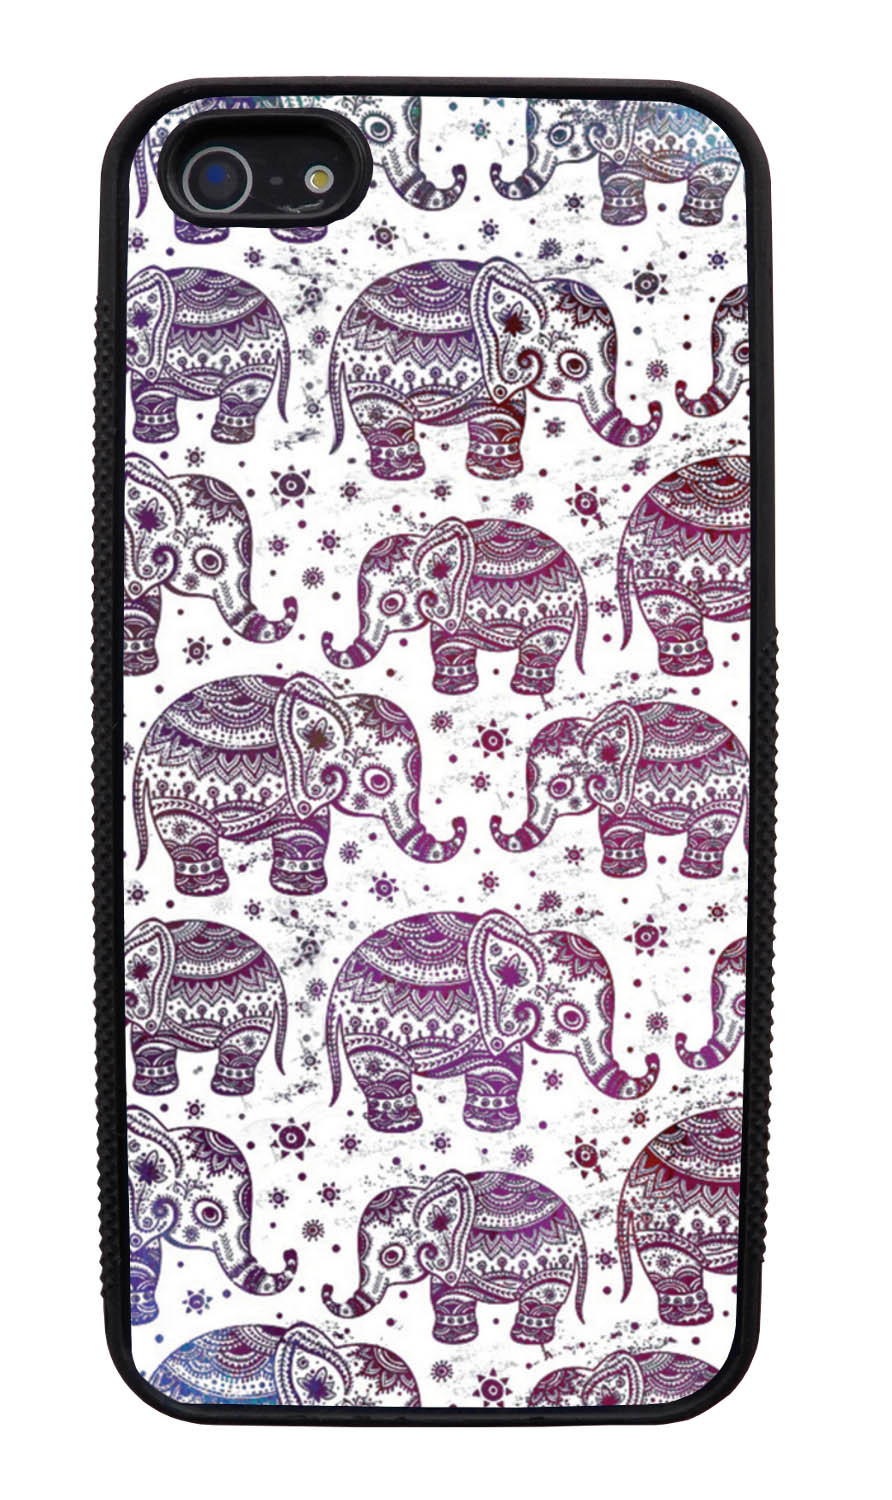 Apple iPhone 5 / 5S Aztec Case - Sun Sparkled Neon Lights Purple on White - Tribal Elephant - Black Slim Rubber Case